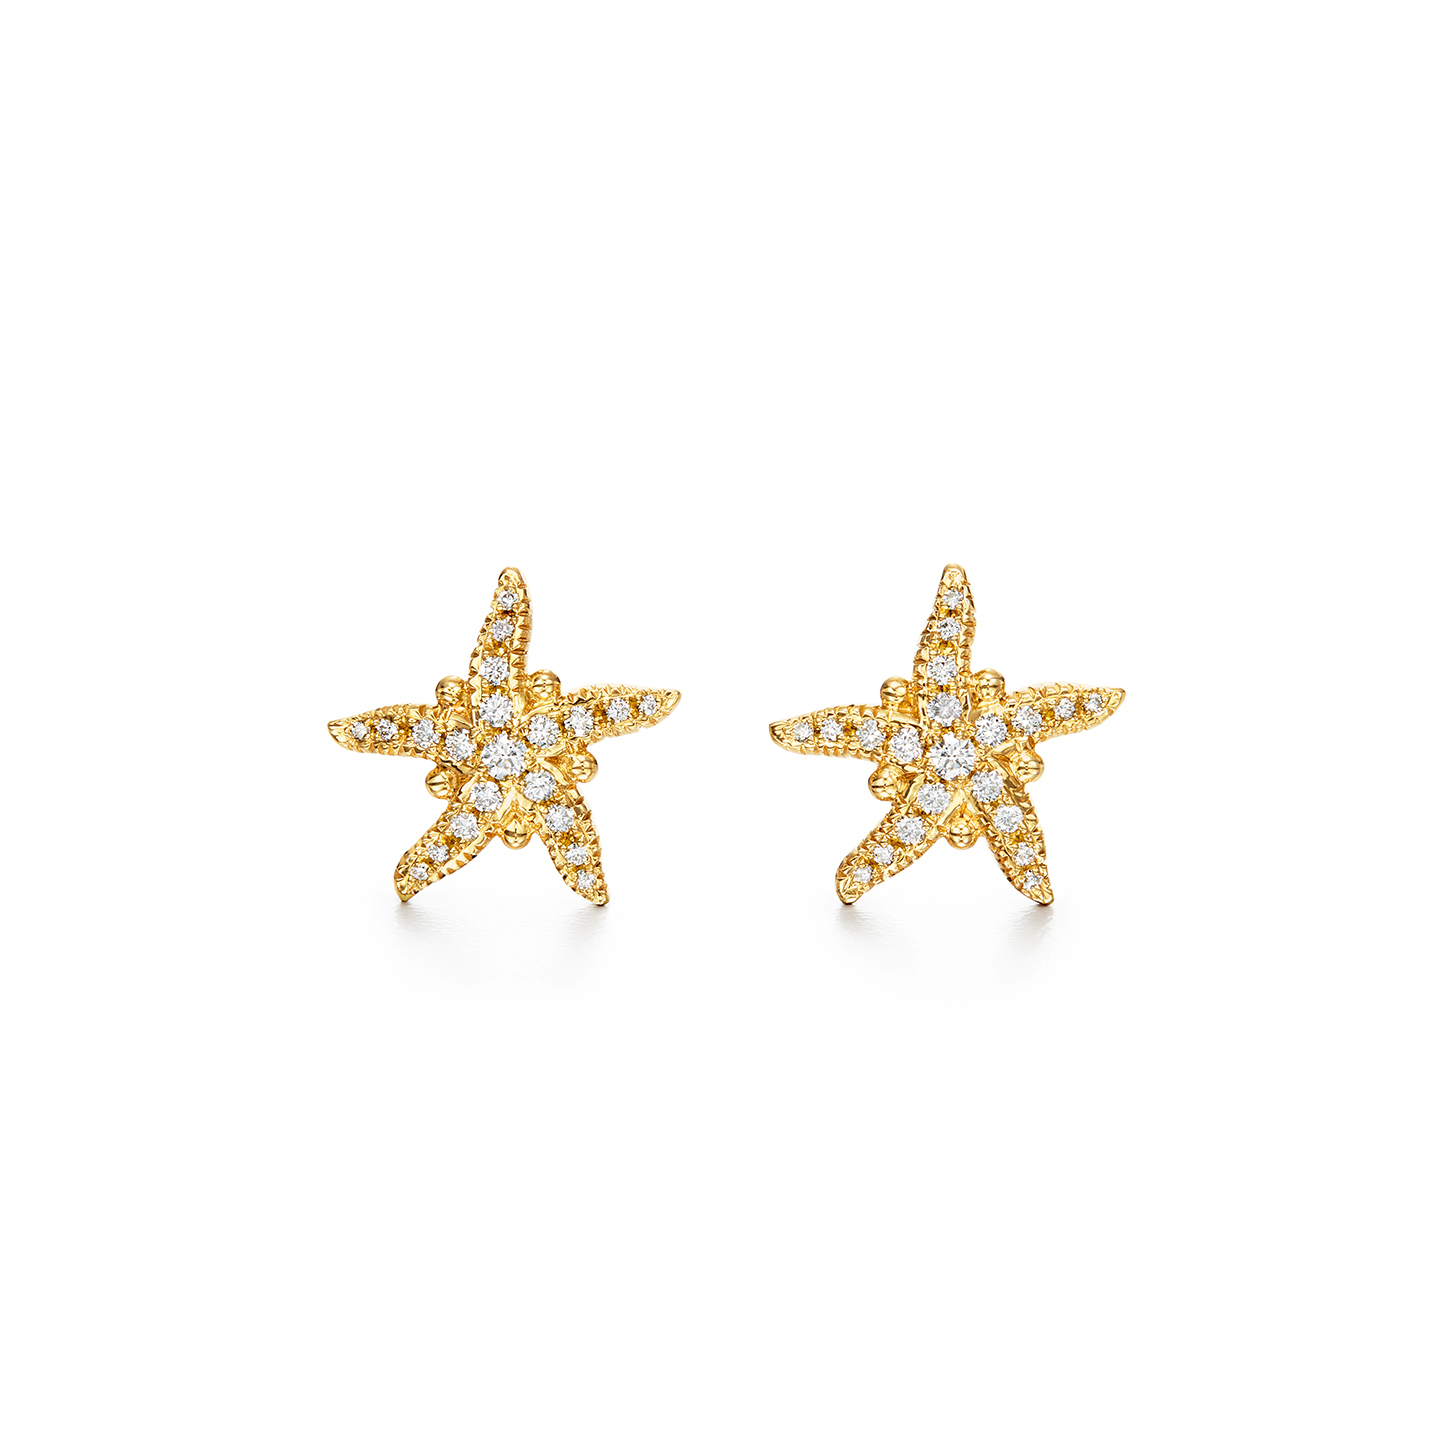 Temple St. Clair 18K Yellow Gold .42cts  Diamonds Gold Earrings with Stones E31805-PVSTRP